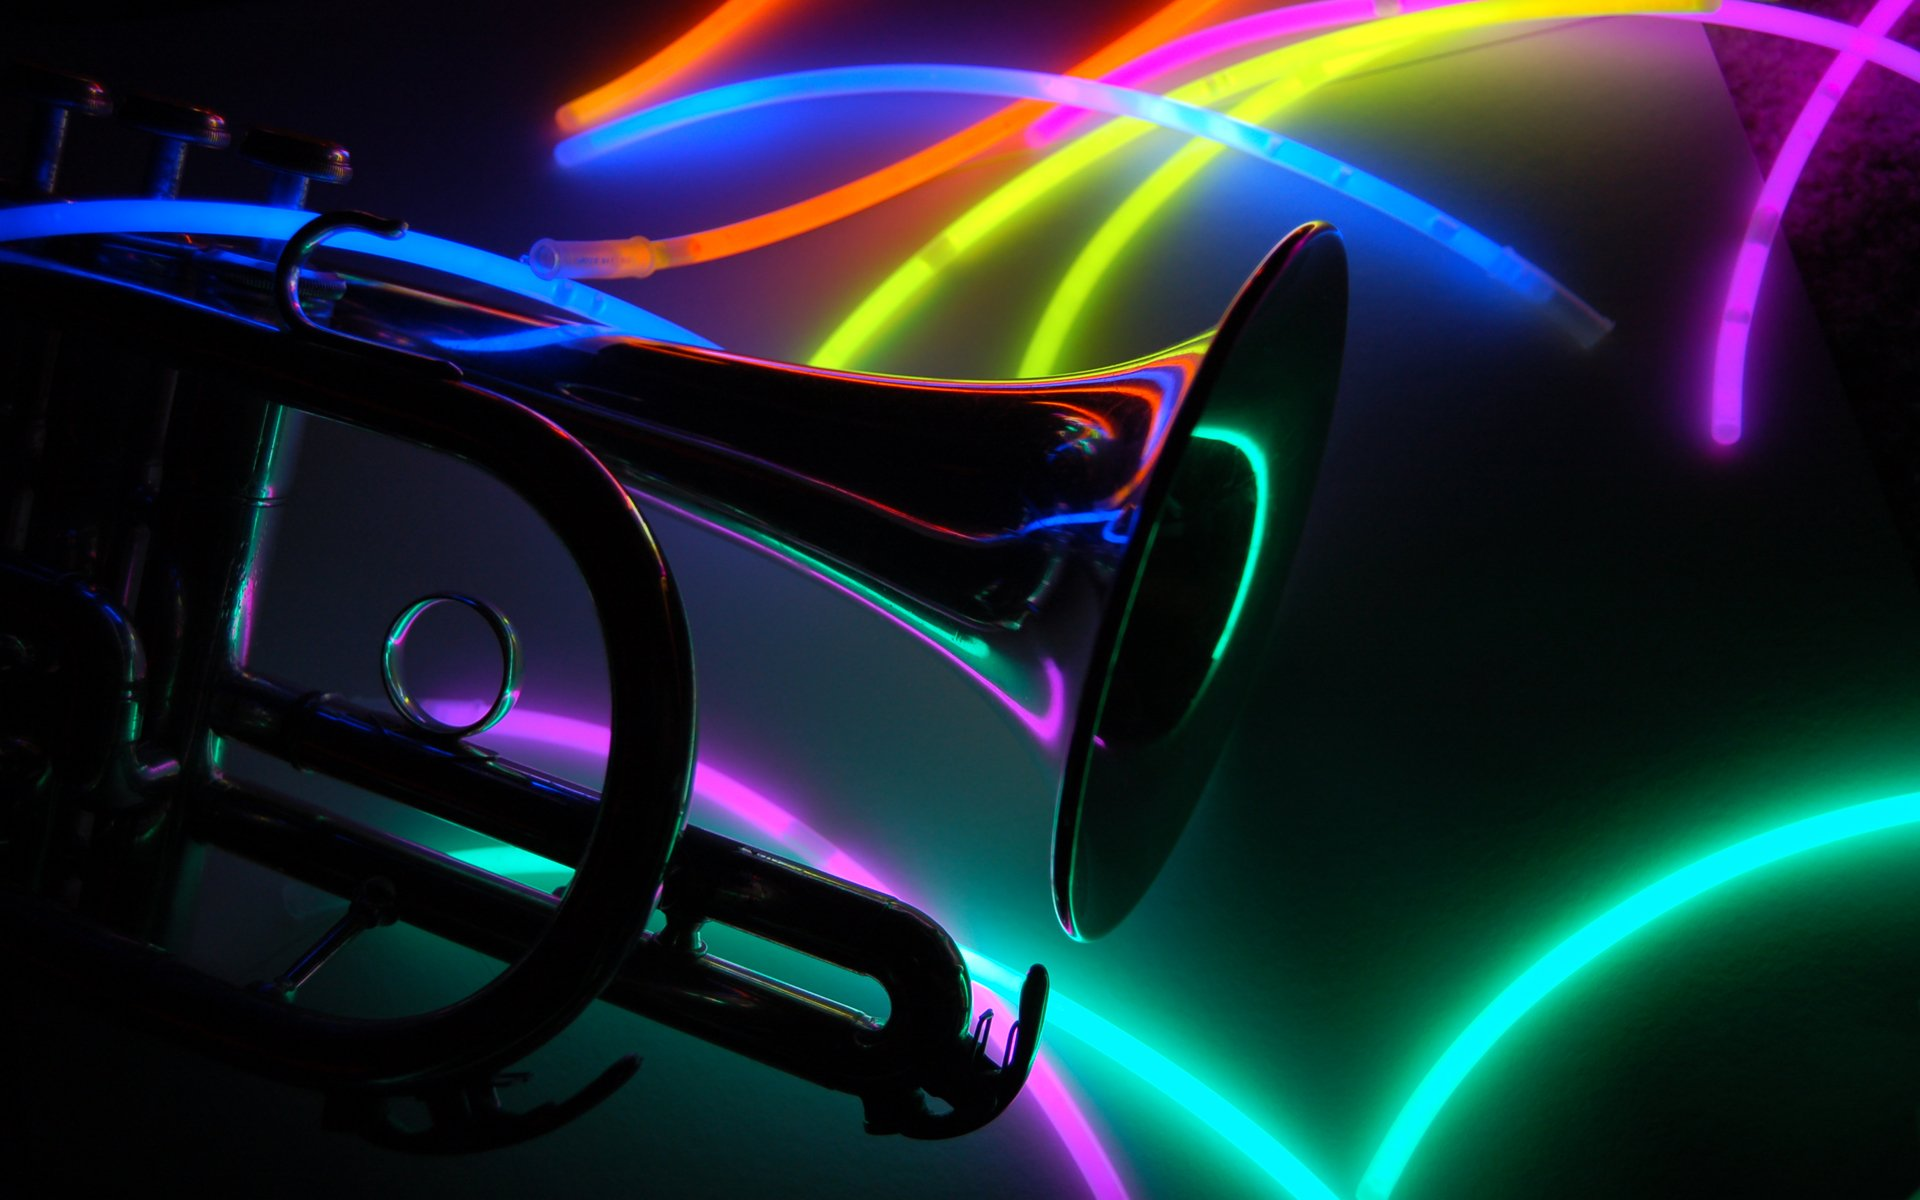 colorful trumpet desktop wallpaper 63169